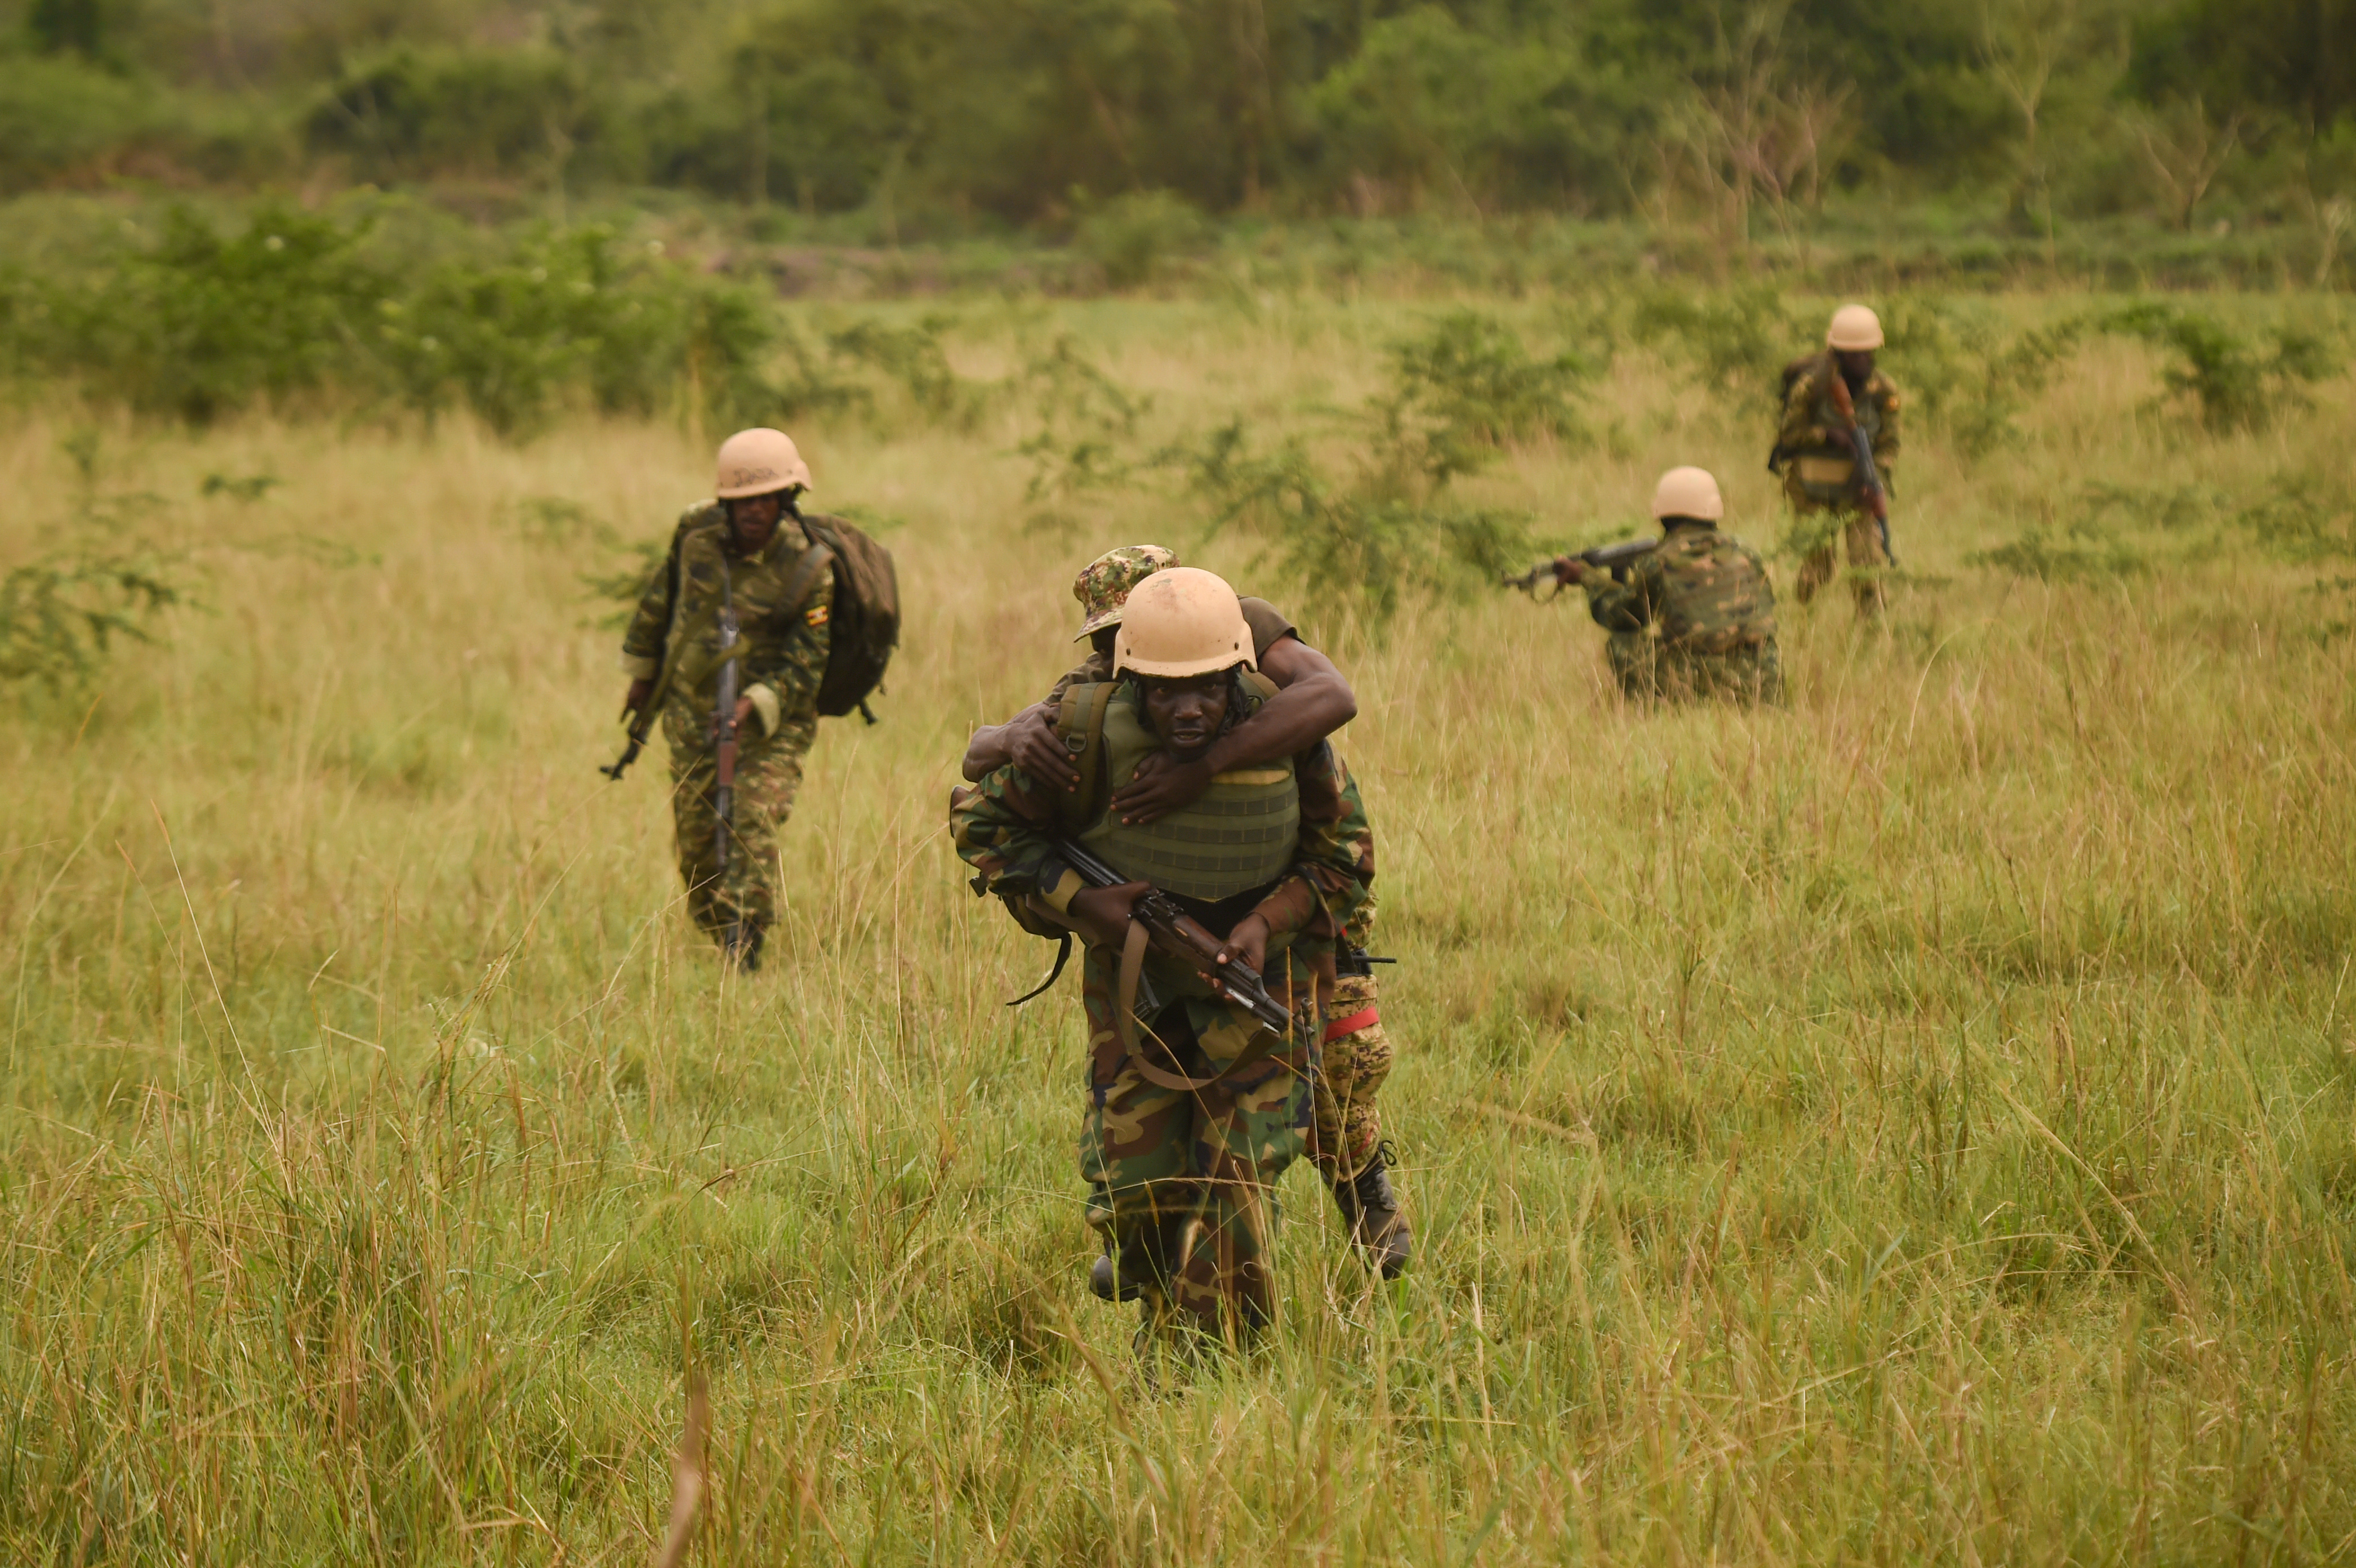 A Uganda People's Defense Force (UPDF) soldier with Ugandan Battle Group 22, carries a simulated casualty to a safer location during a medical exercise at Camp Singo, Uganda, March 3, 2017. Up to 25 percent of deaths on the battlefield are preventable. Administering swift medical attention on the battlefield and in transport greatly improves the survival rate of casualties. (U.S. Air National Guard photo by Staff Sgt. Penny Snoozy)